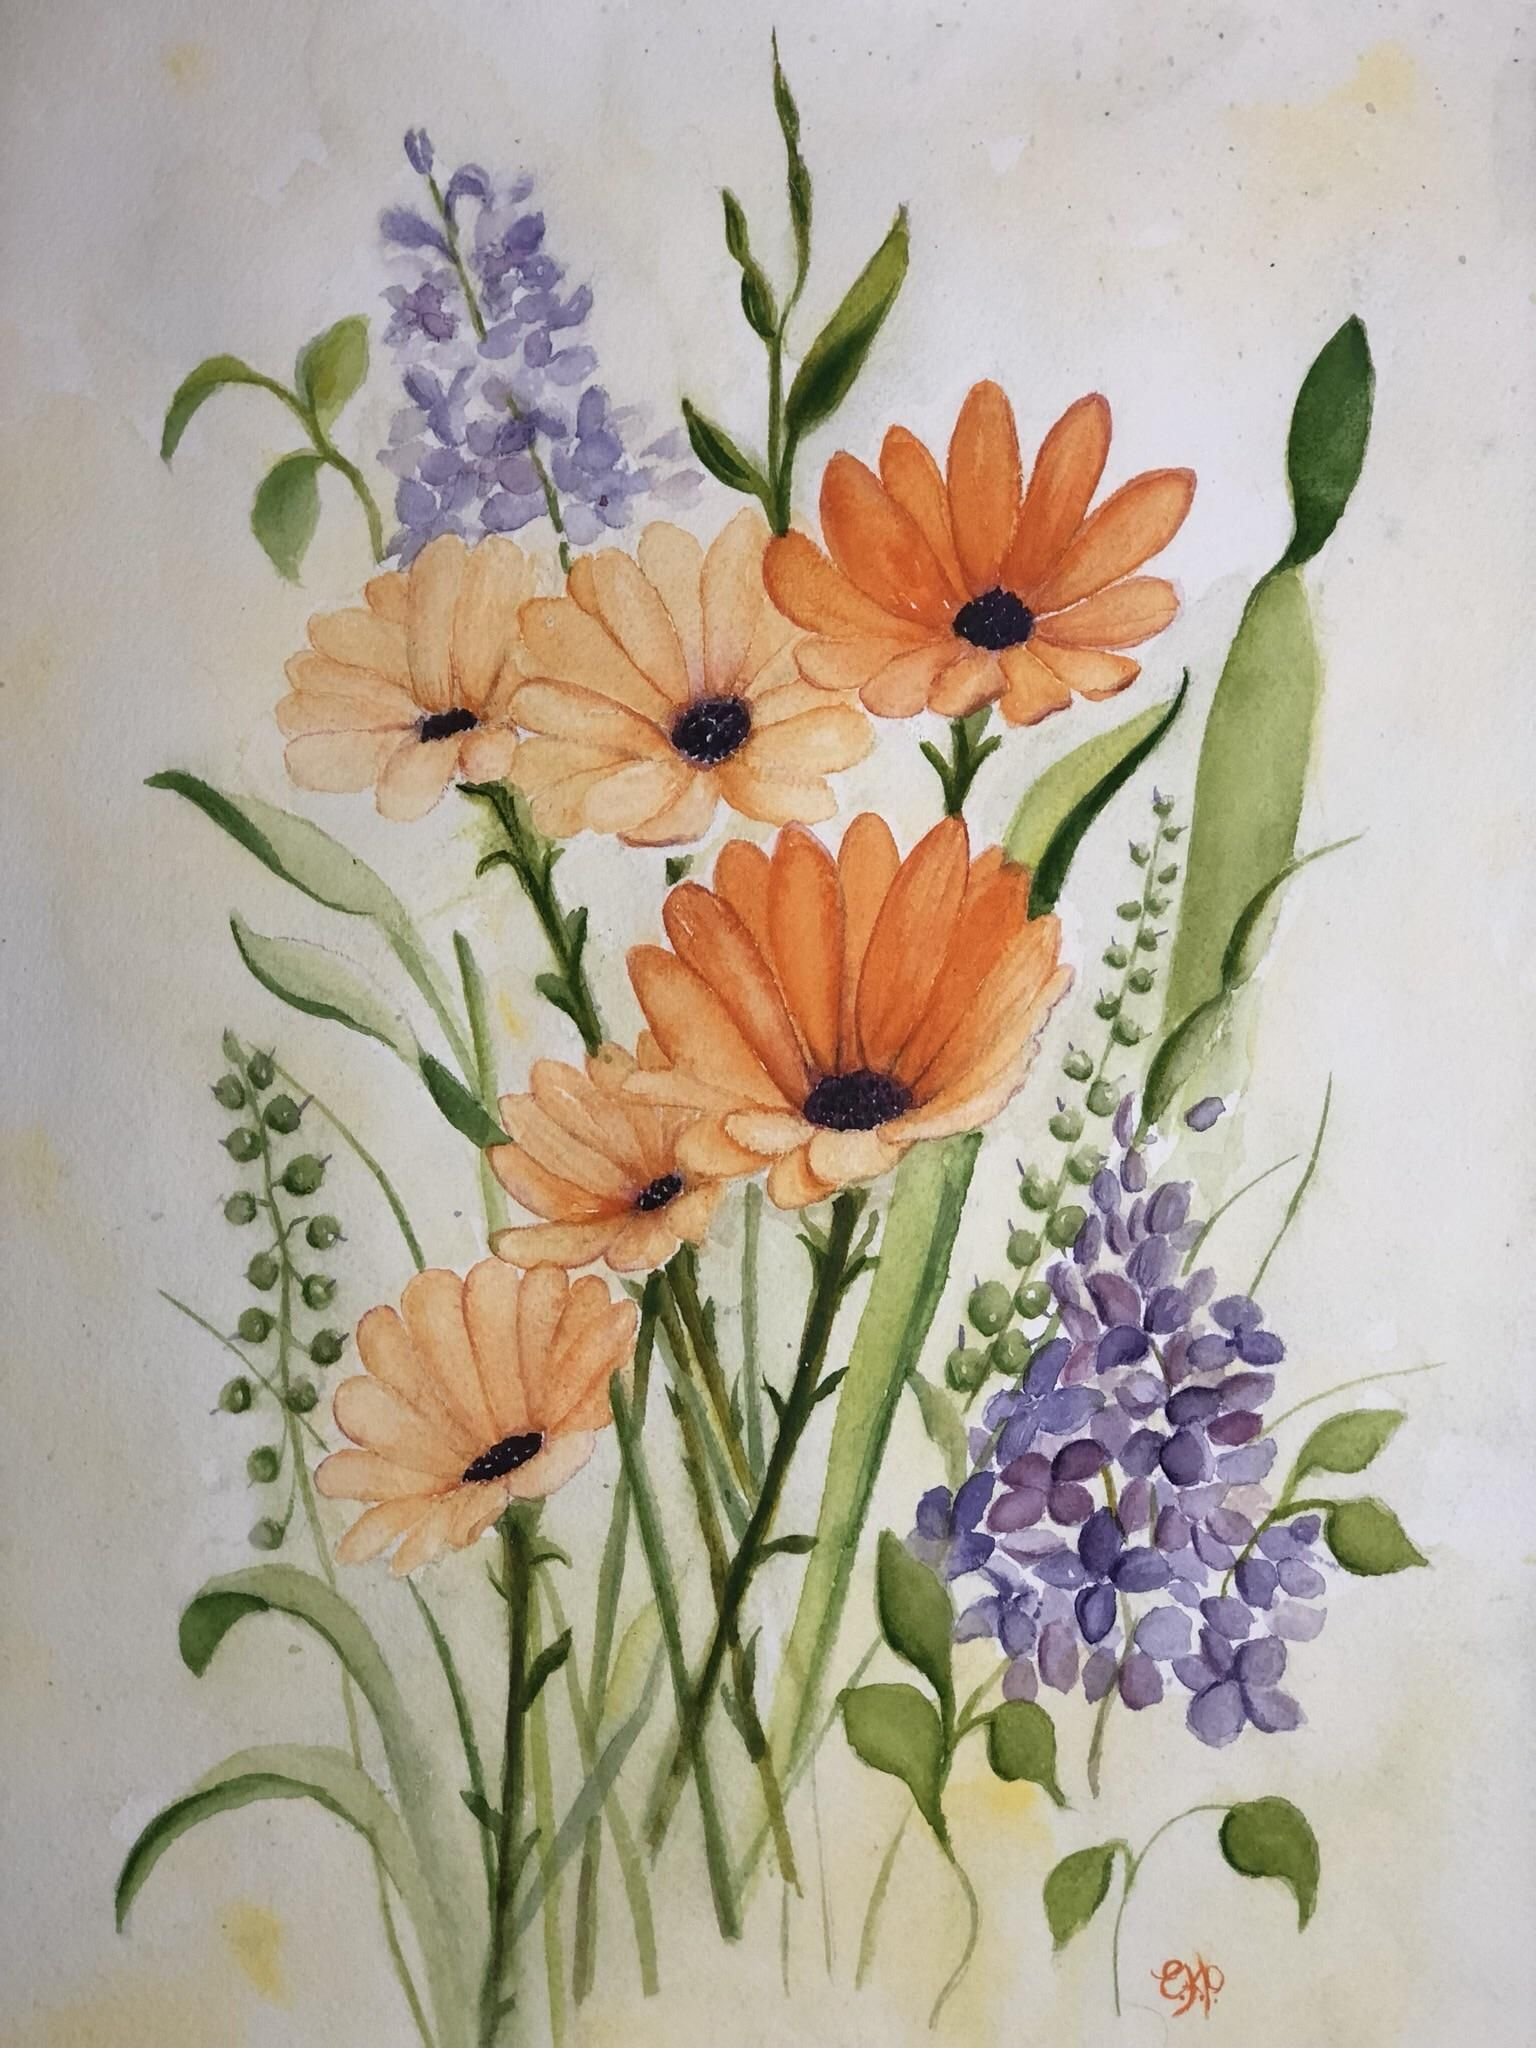 Spring Dreams 11x14 Watercolour Painting By Erin Price Floral